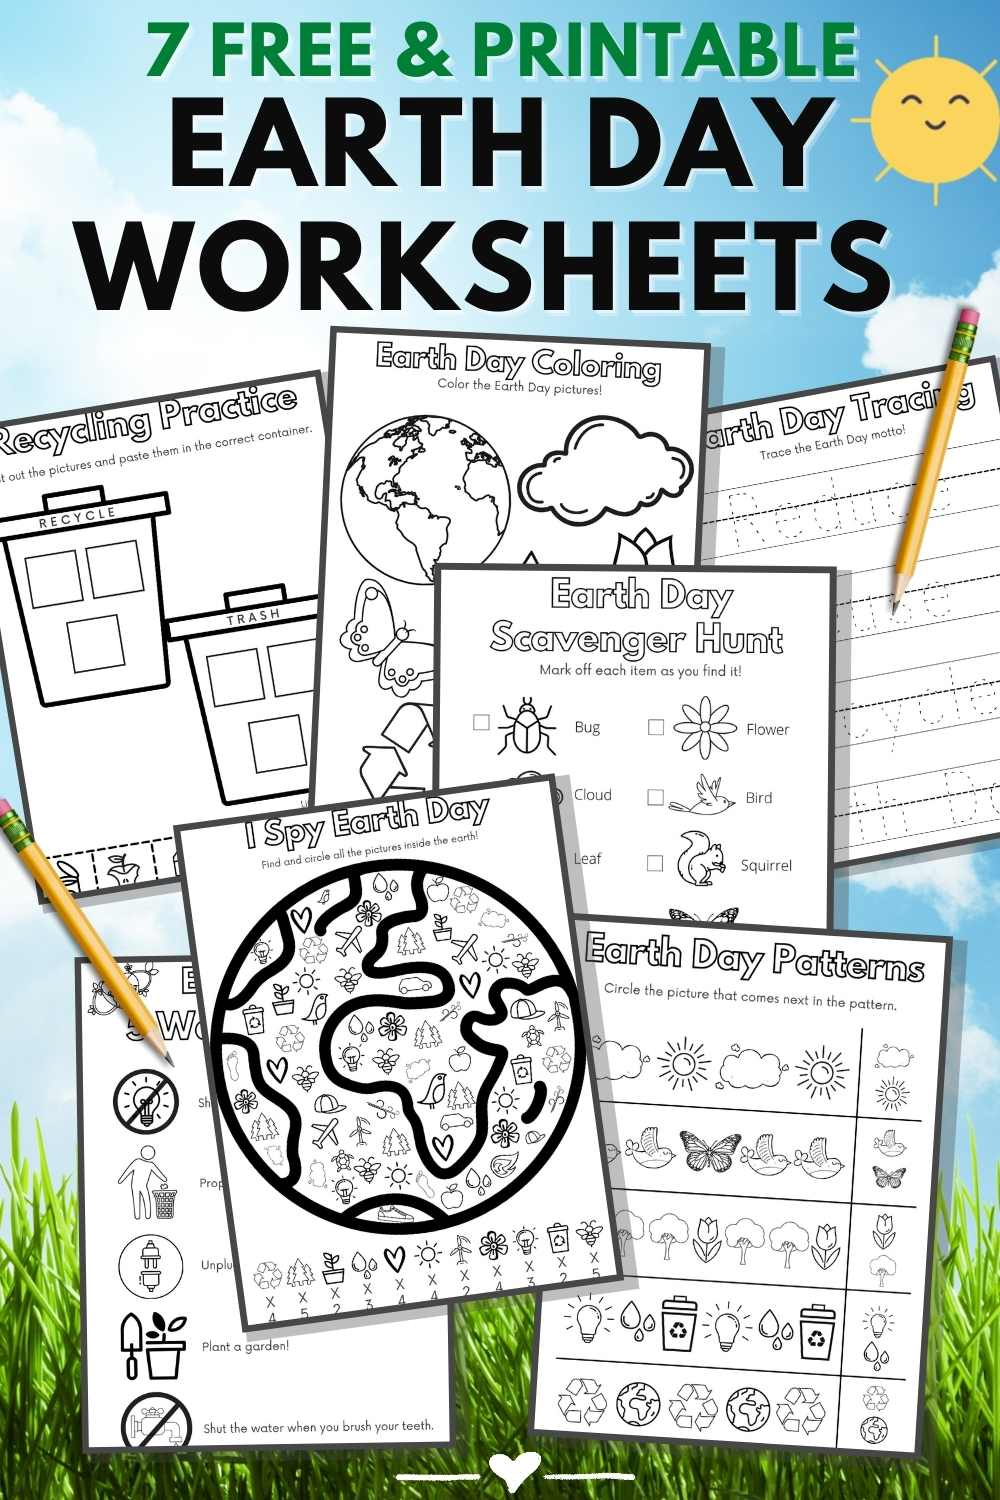 15 Fun Earth Day Crafts & Activities- printable worksheets